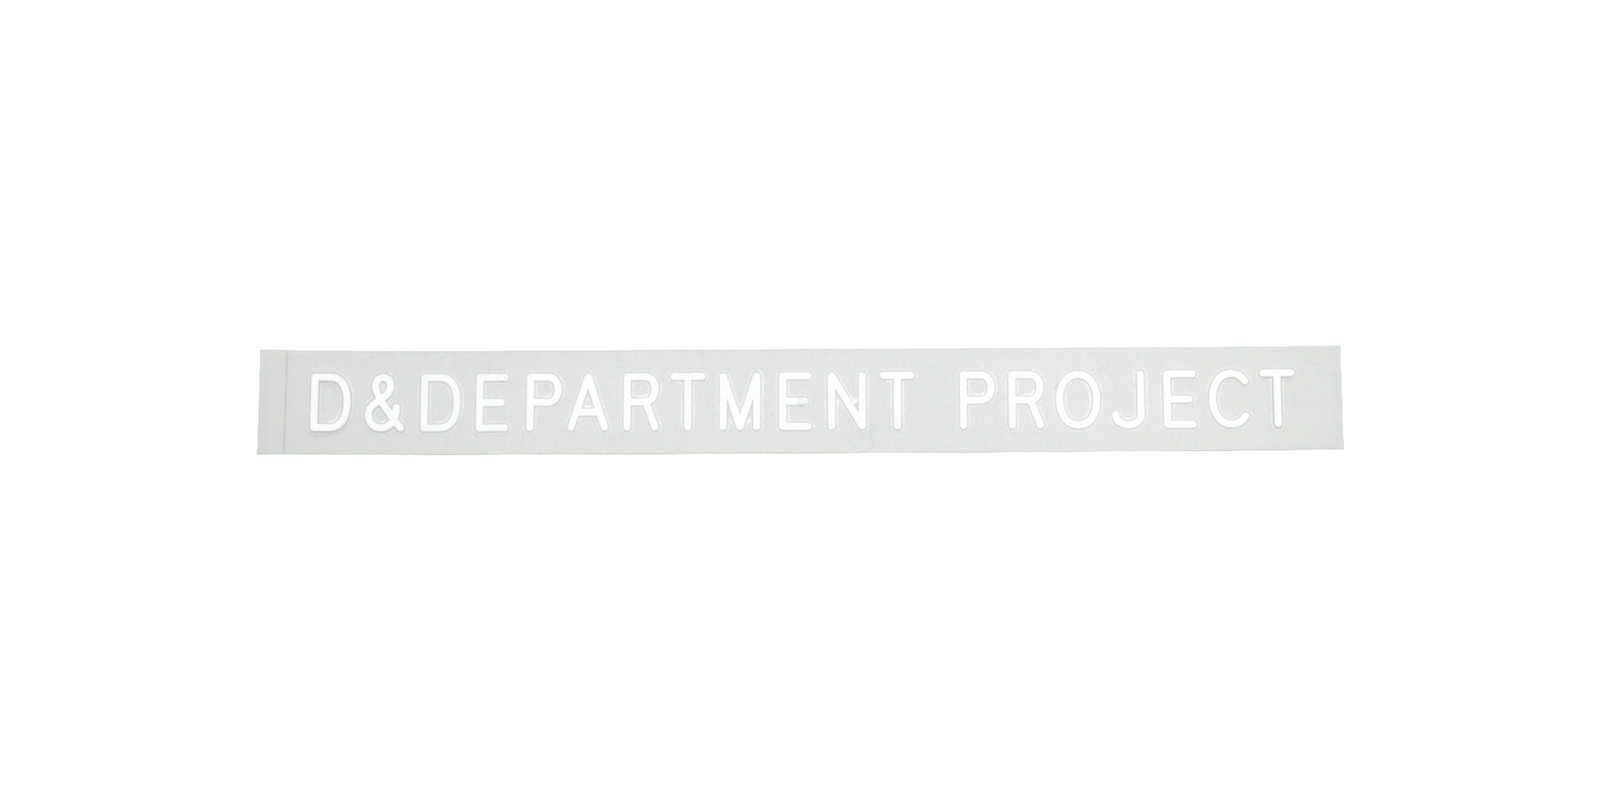 D&DEPARTMENT PROJECTステッカー